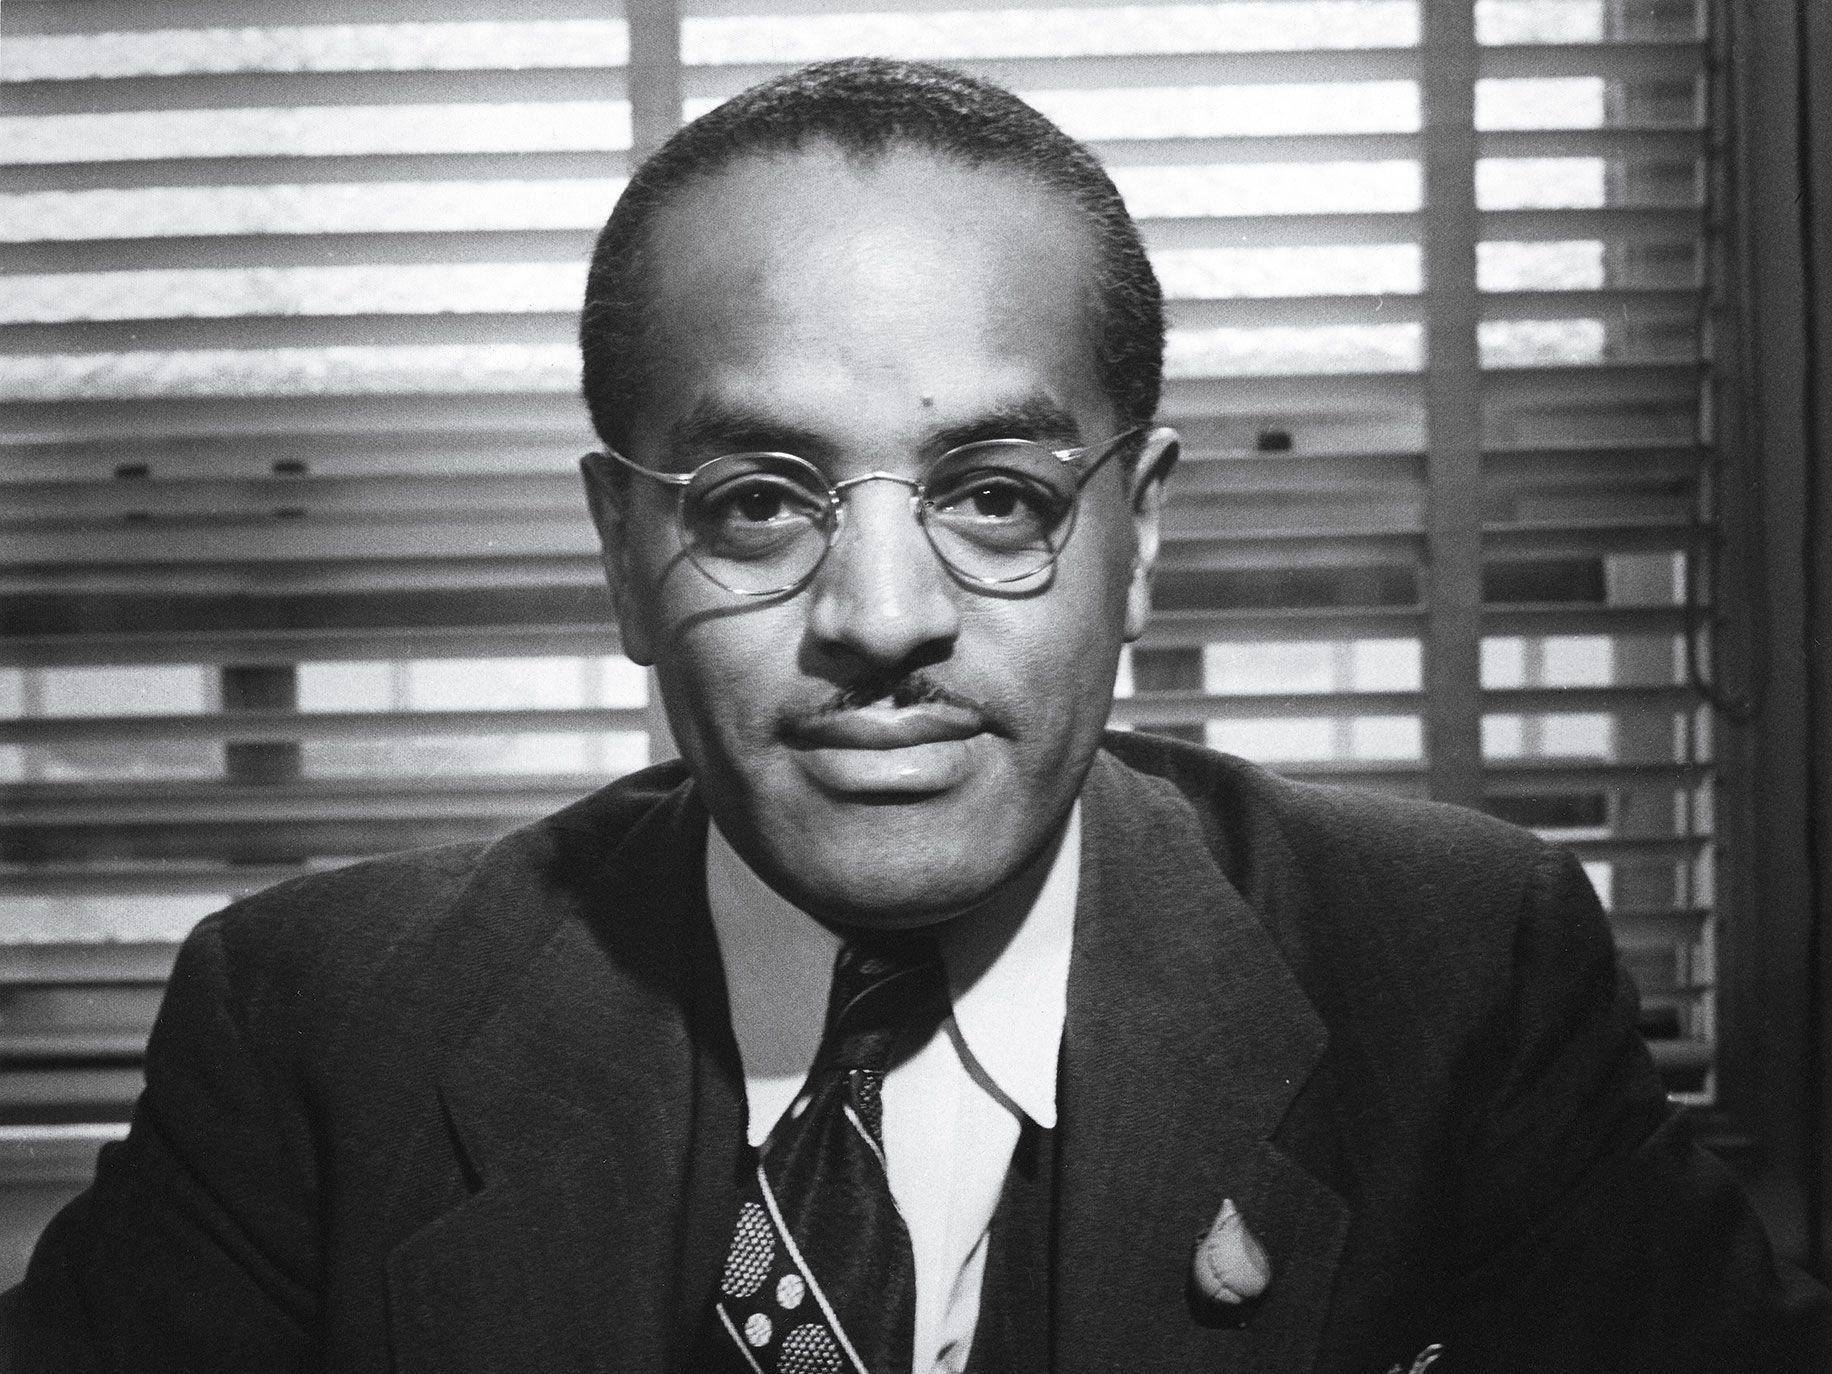 Los Angeles civil rights leader Floyd C. Covington, 1942.